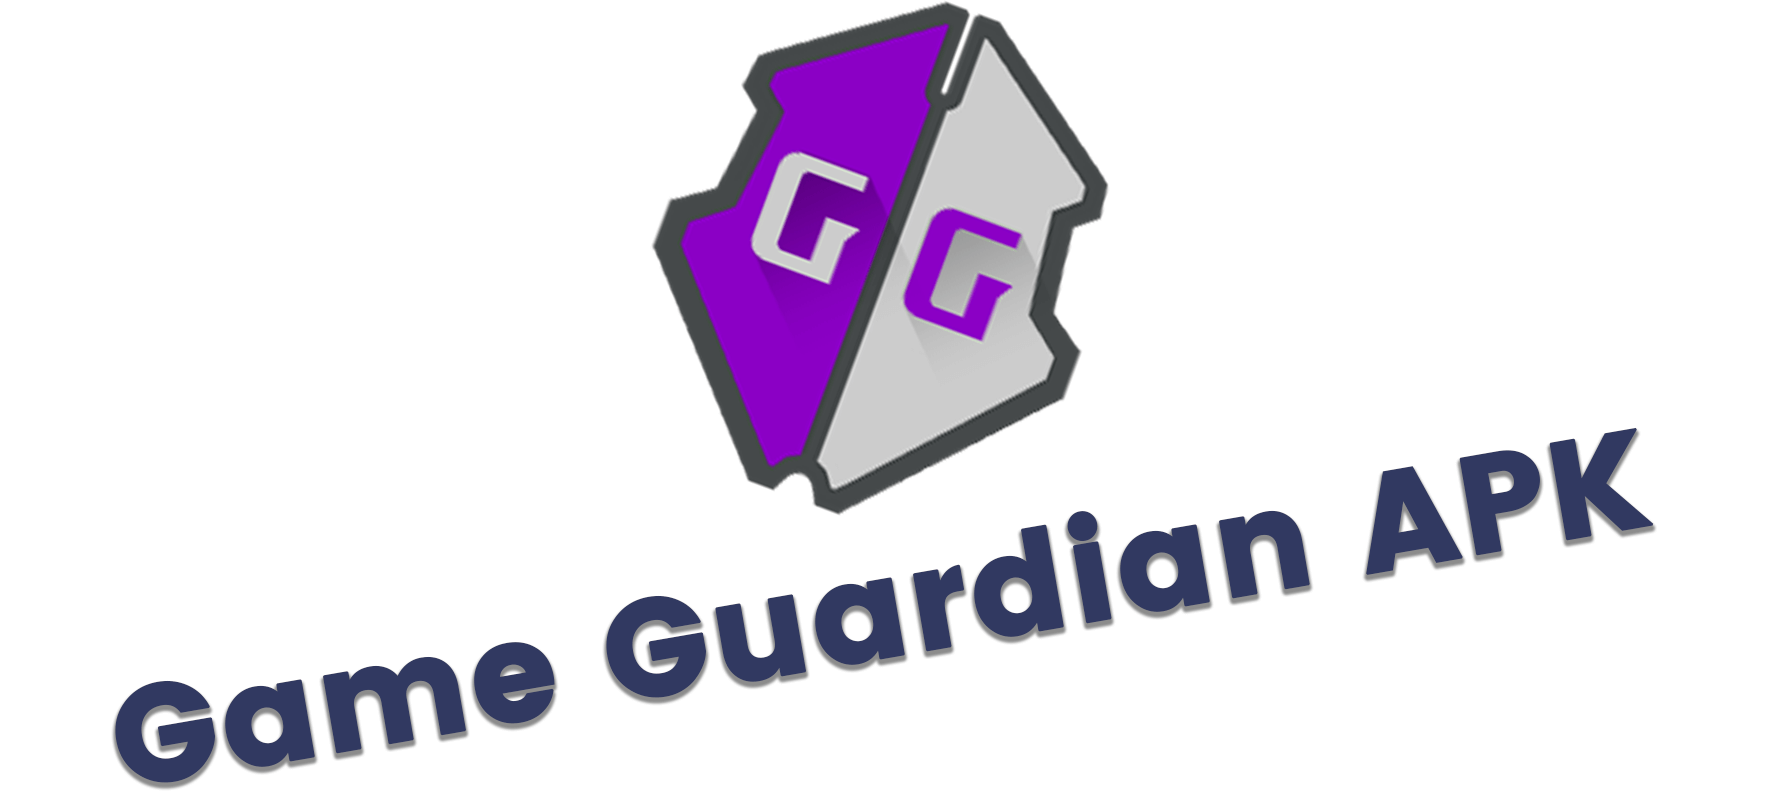 The download game guardian apk in 2019.